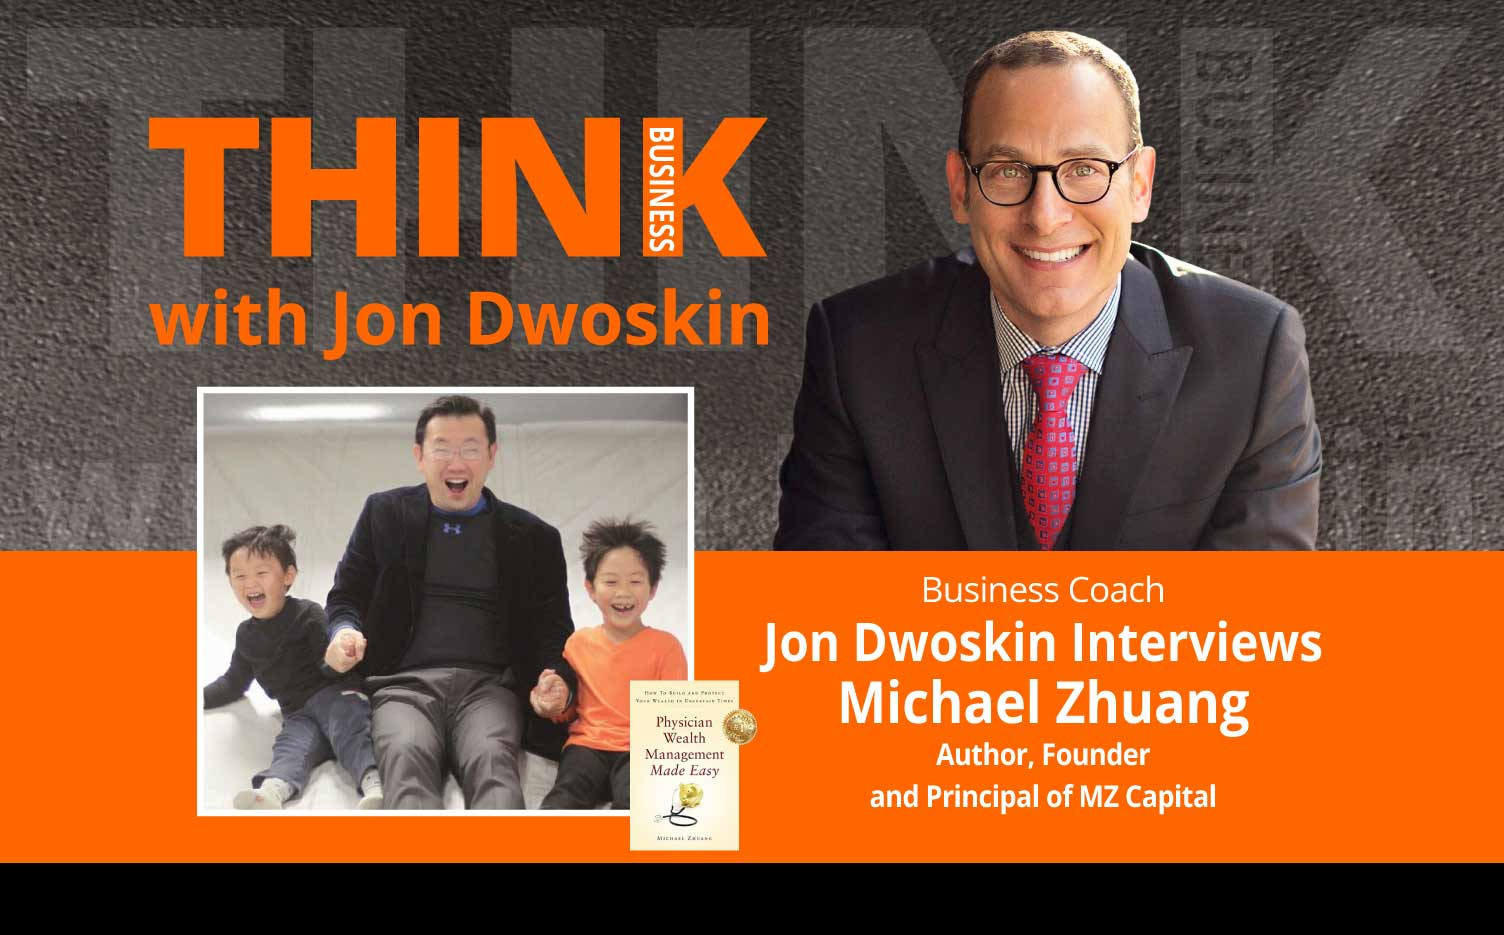 THINK Business Podcast: Jon Dwoskin Interviews Michael Zhuang, Author, Founder and Principal of MZ Capital